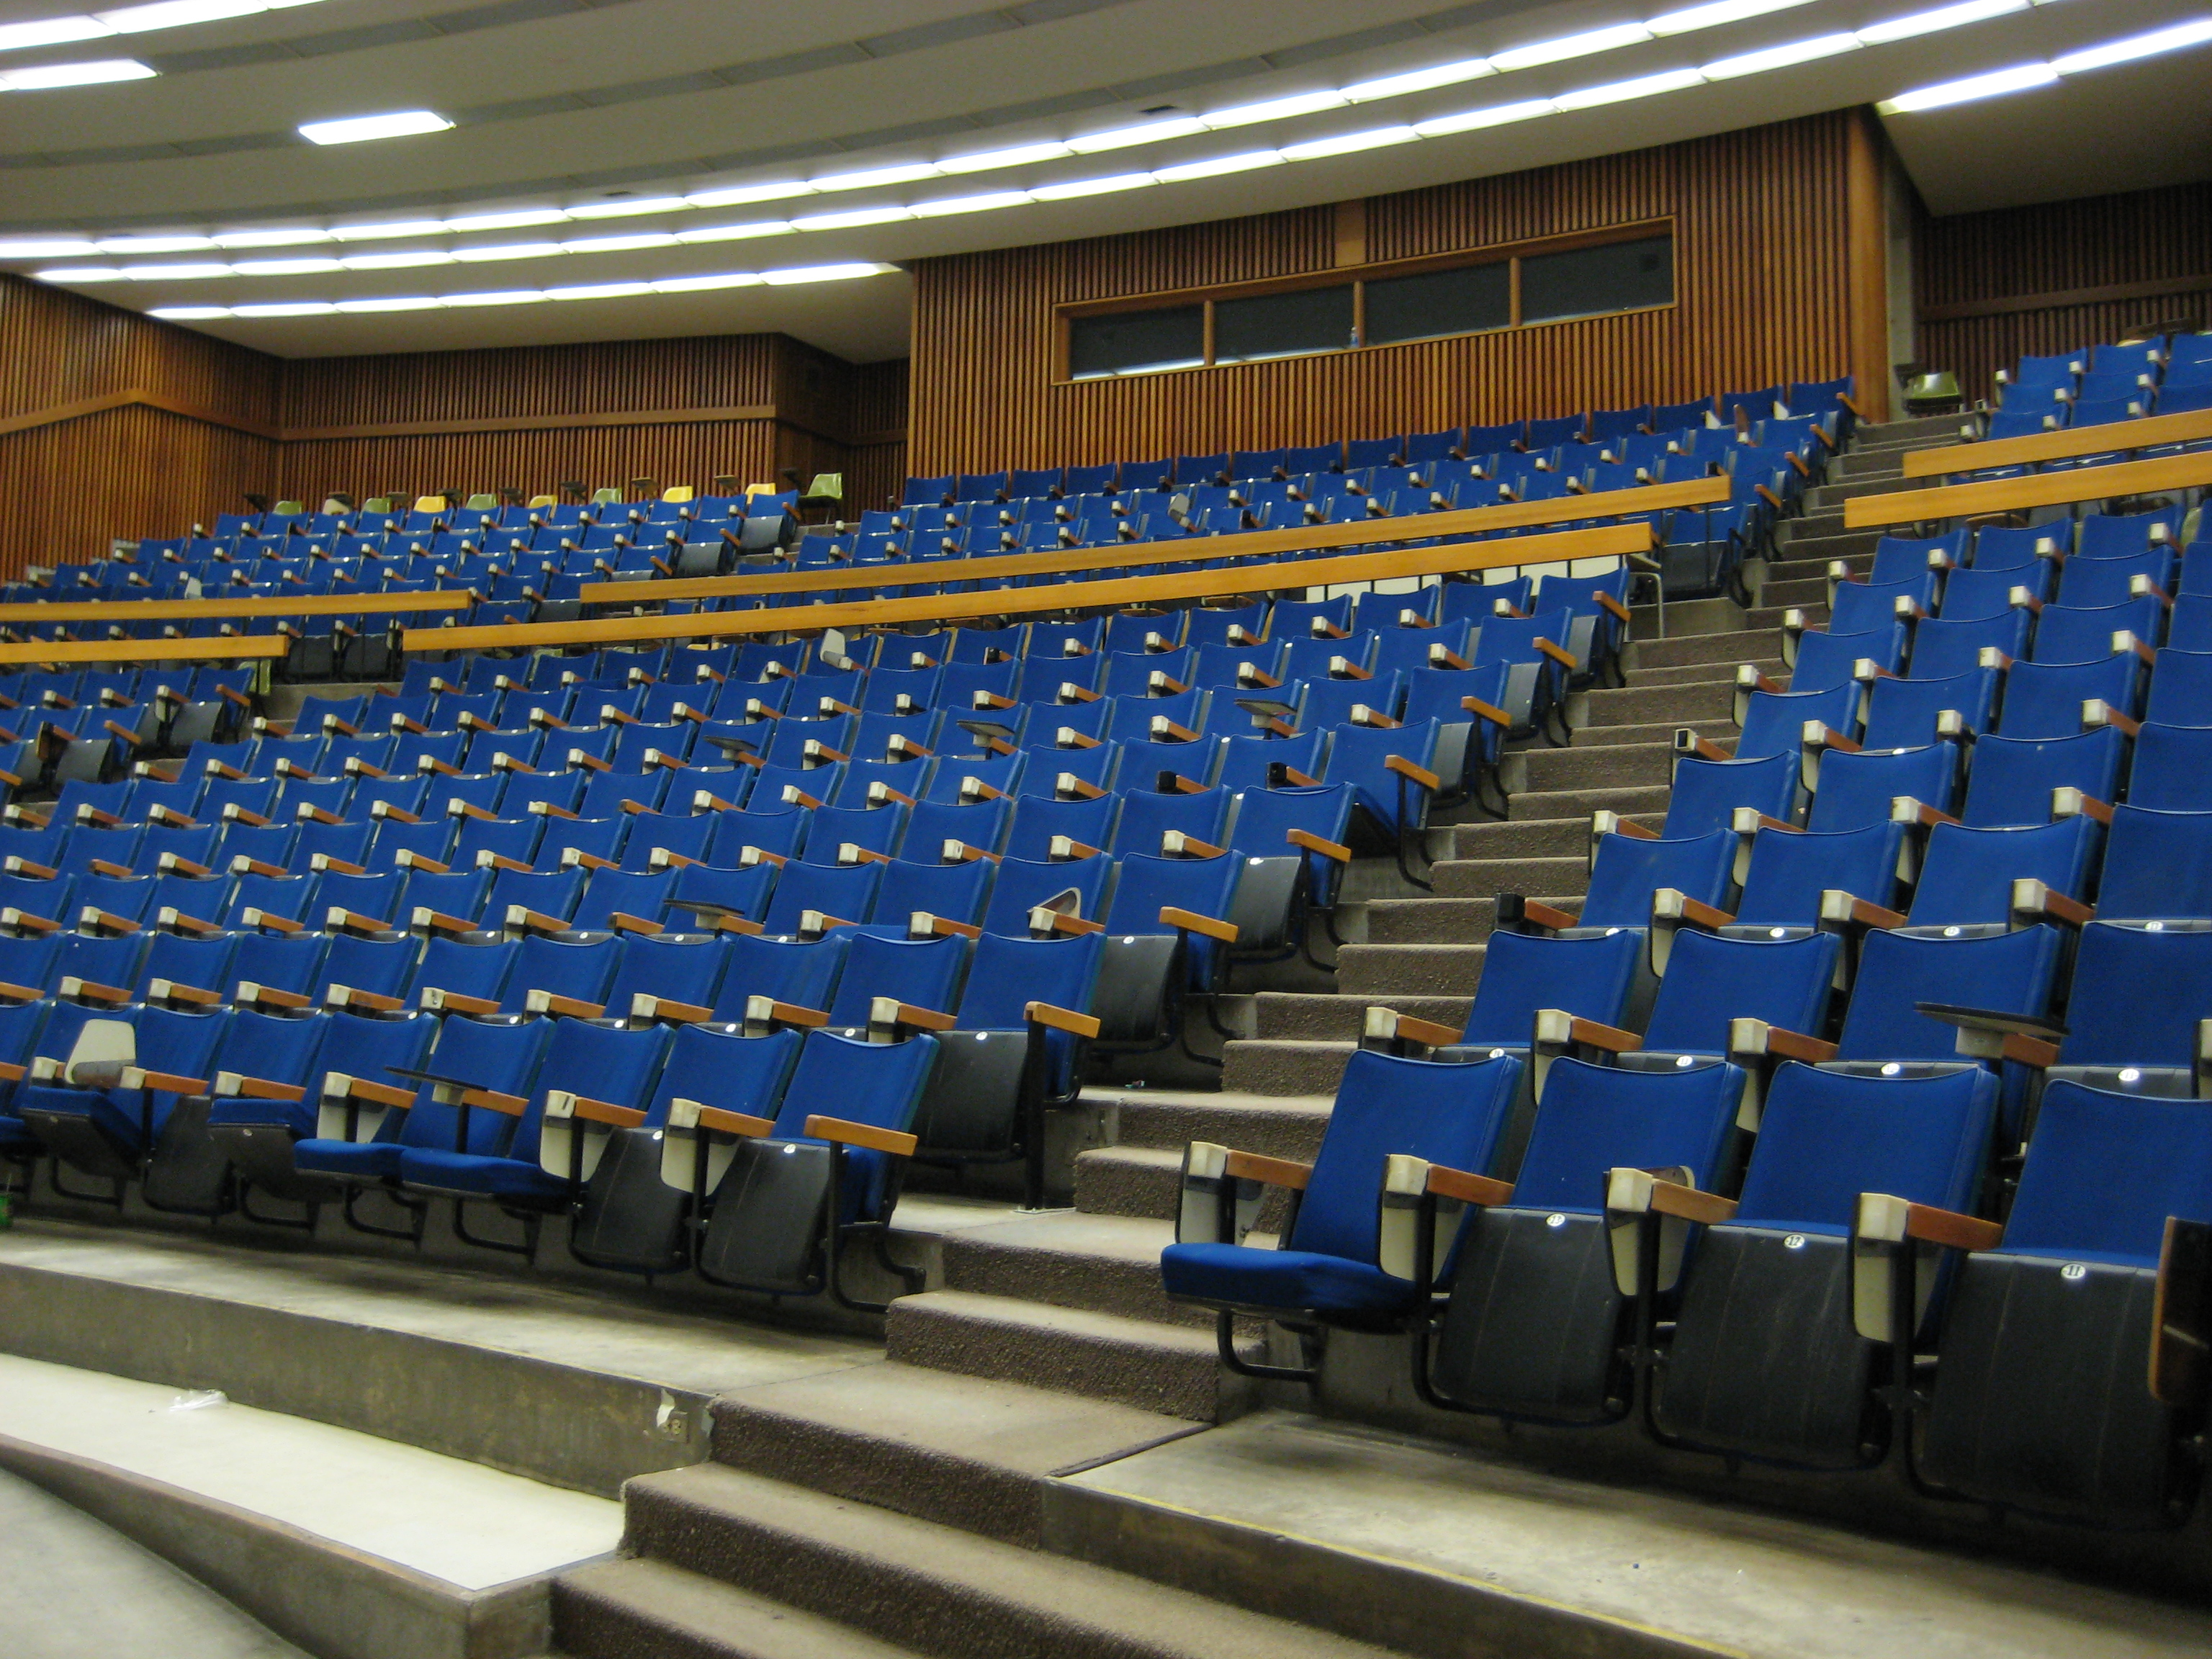 Curtis Lecture Halls interior view1 empty class